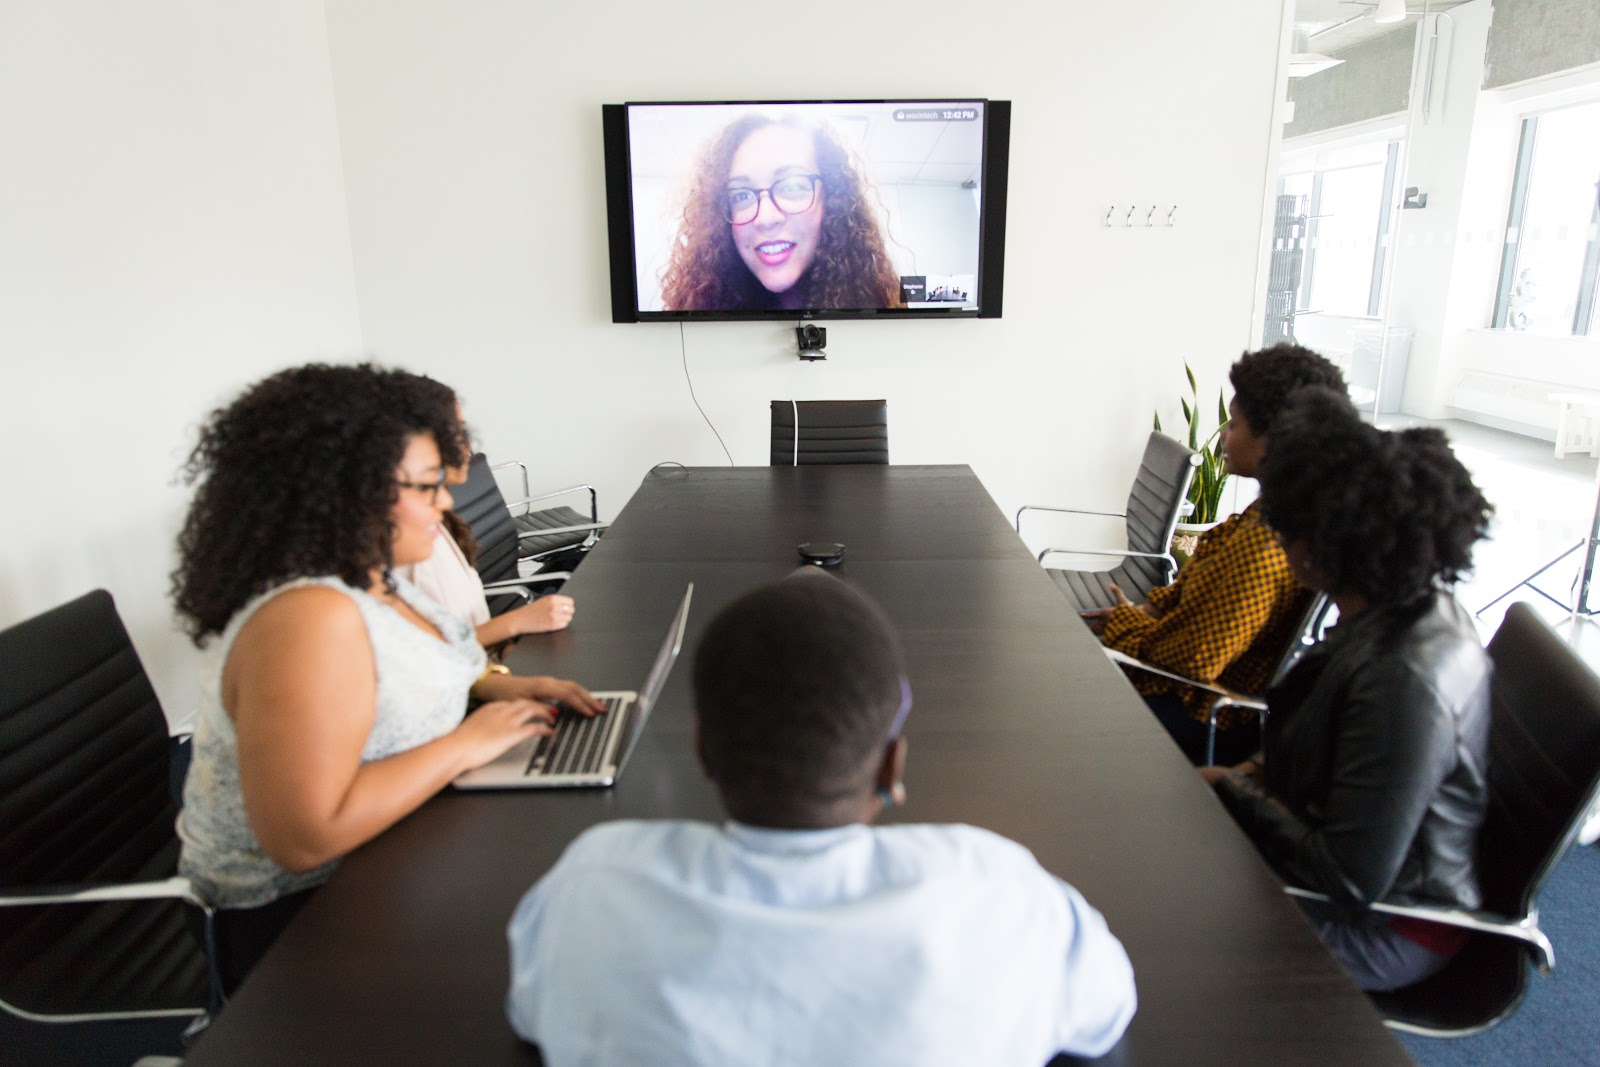 remote-first means everyone needs to participate in meetings remotely. it's the default